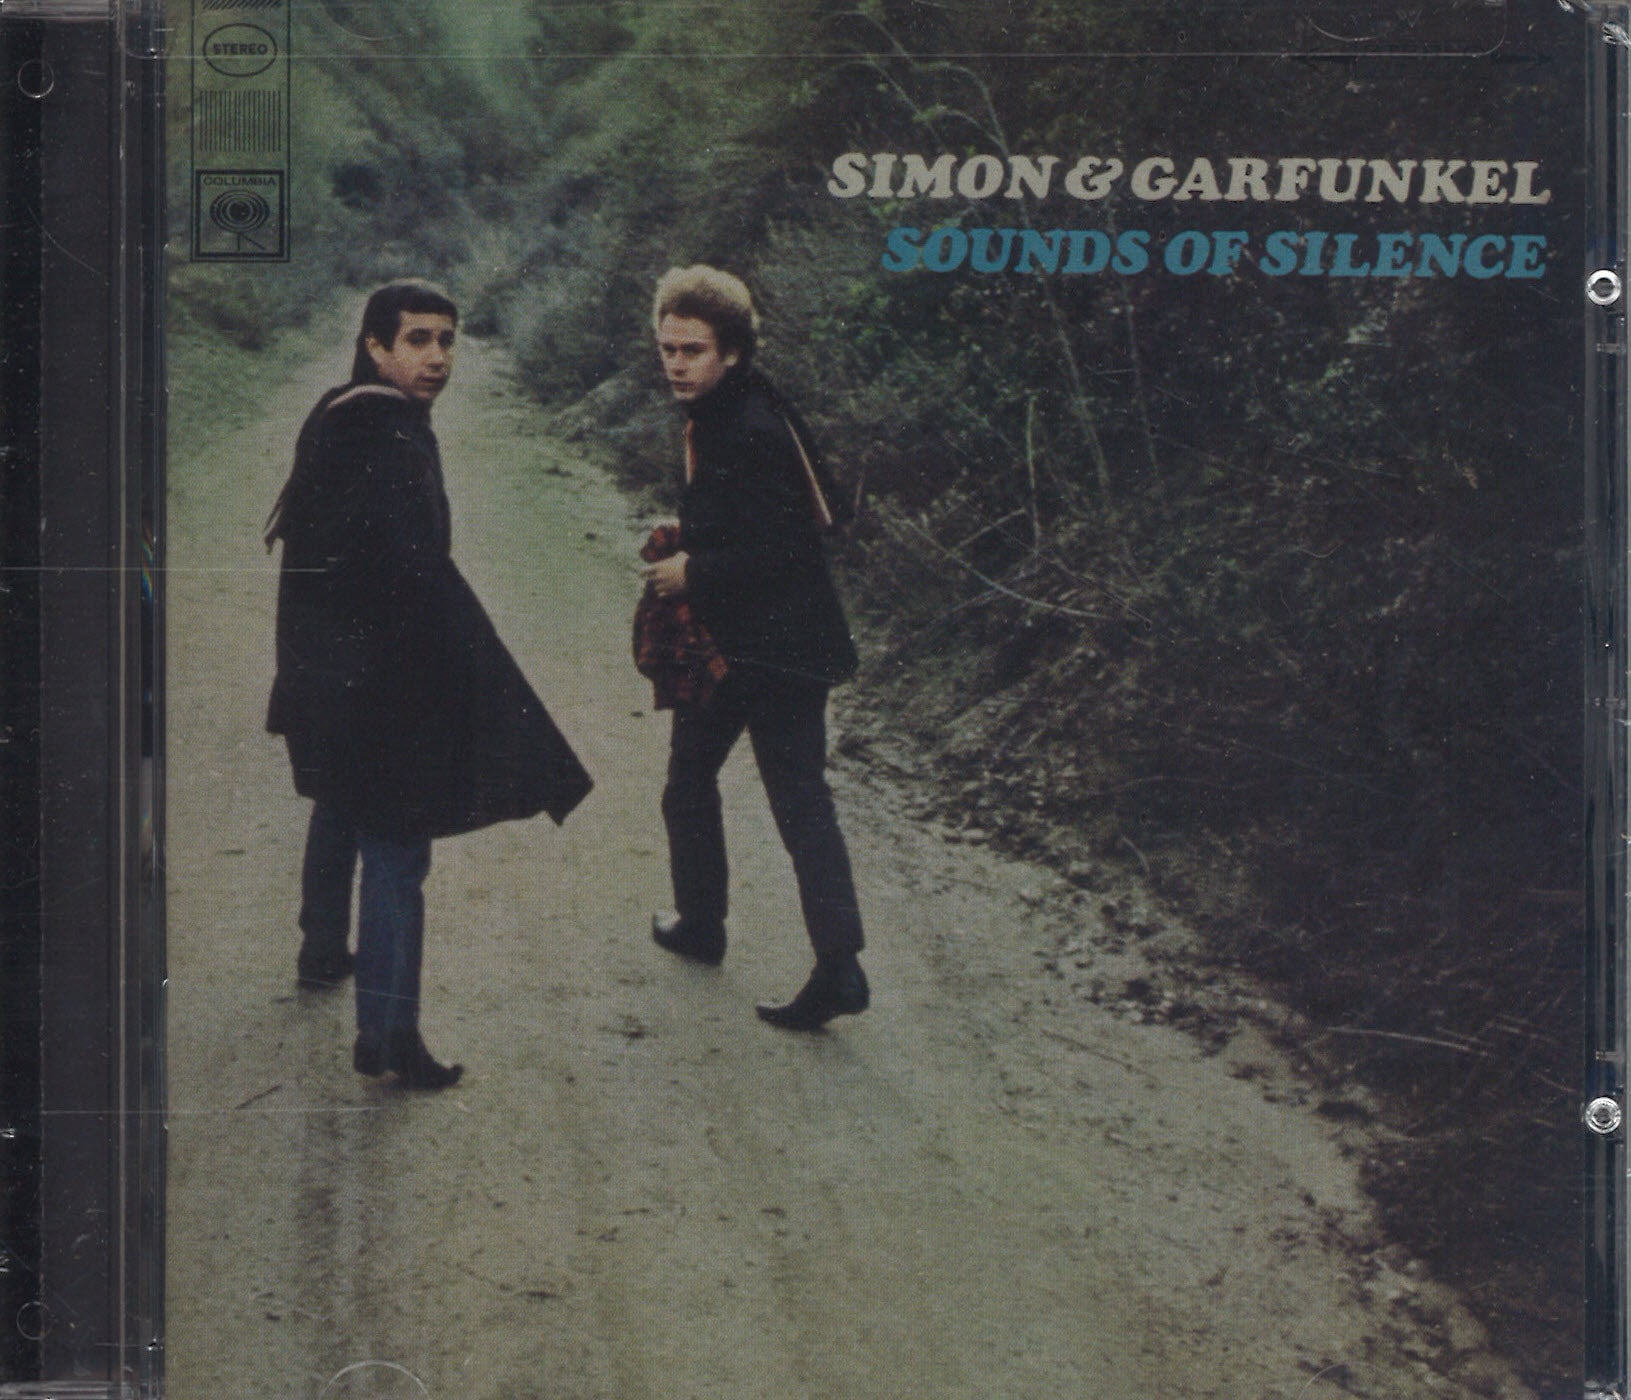 Simon & Garfunkel Sounds Of Silence